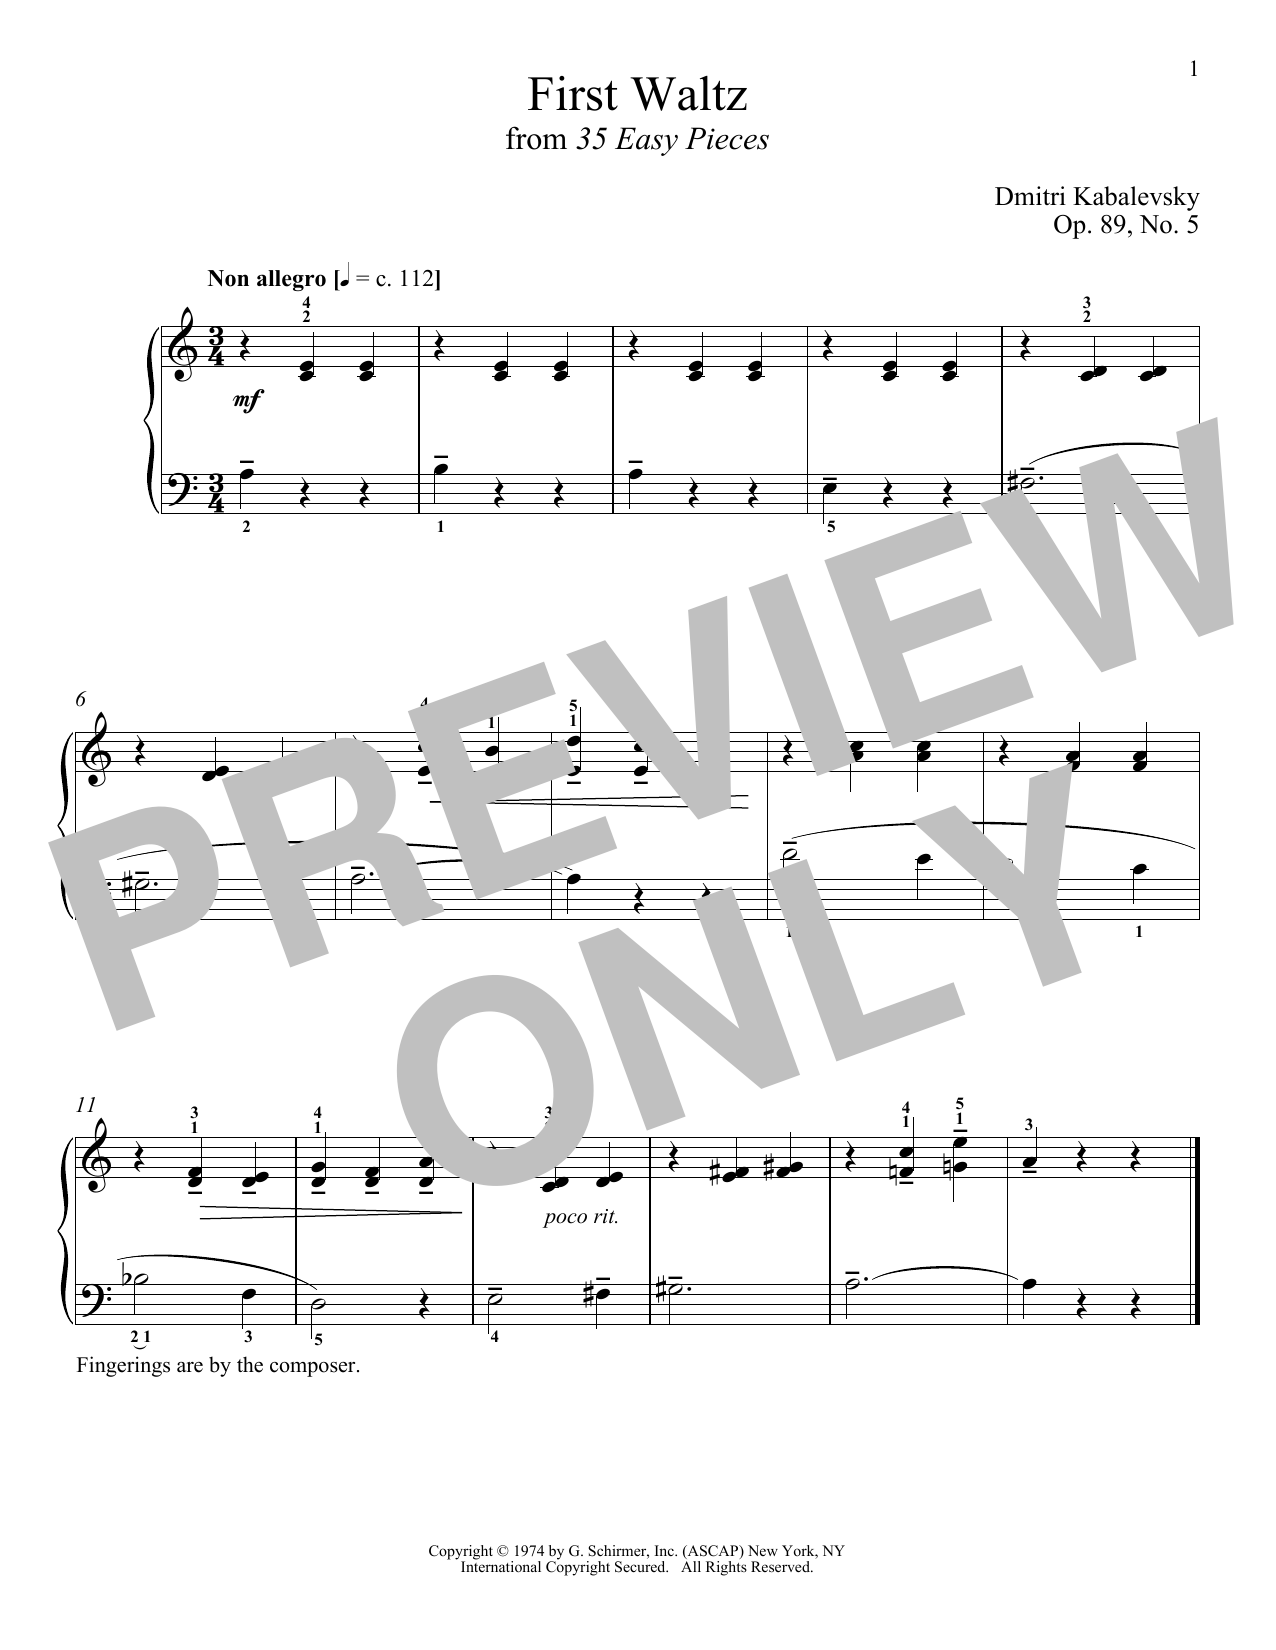 Download Dmitri Kabalevsky 'First Waltz' Digital Sheet Music Notes & Chords and start playing in minutes